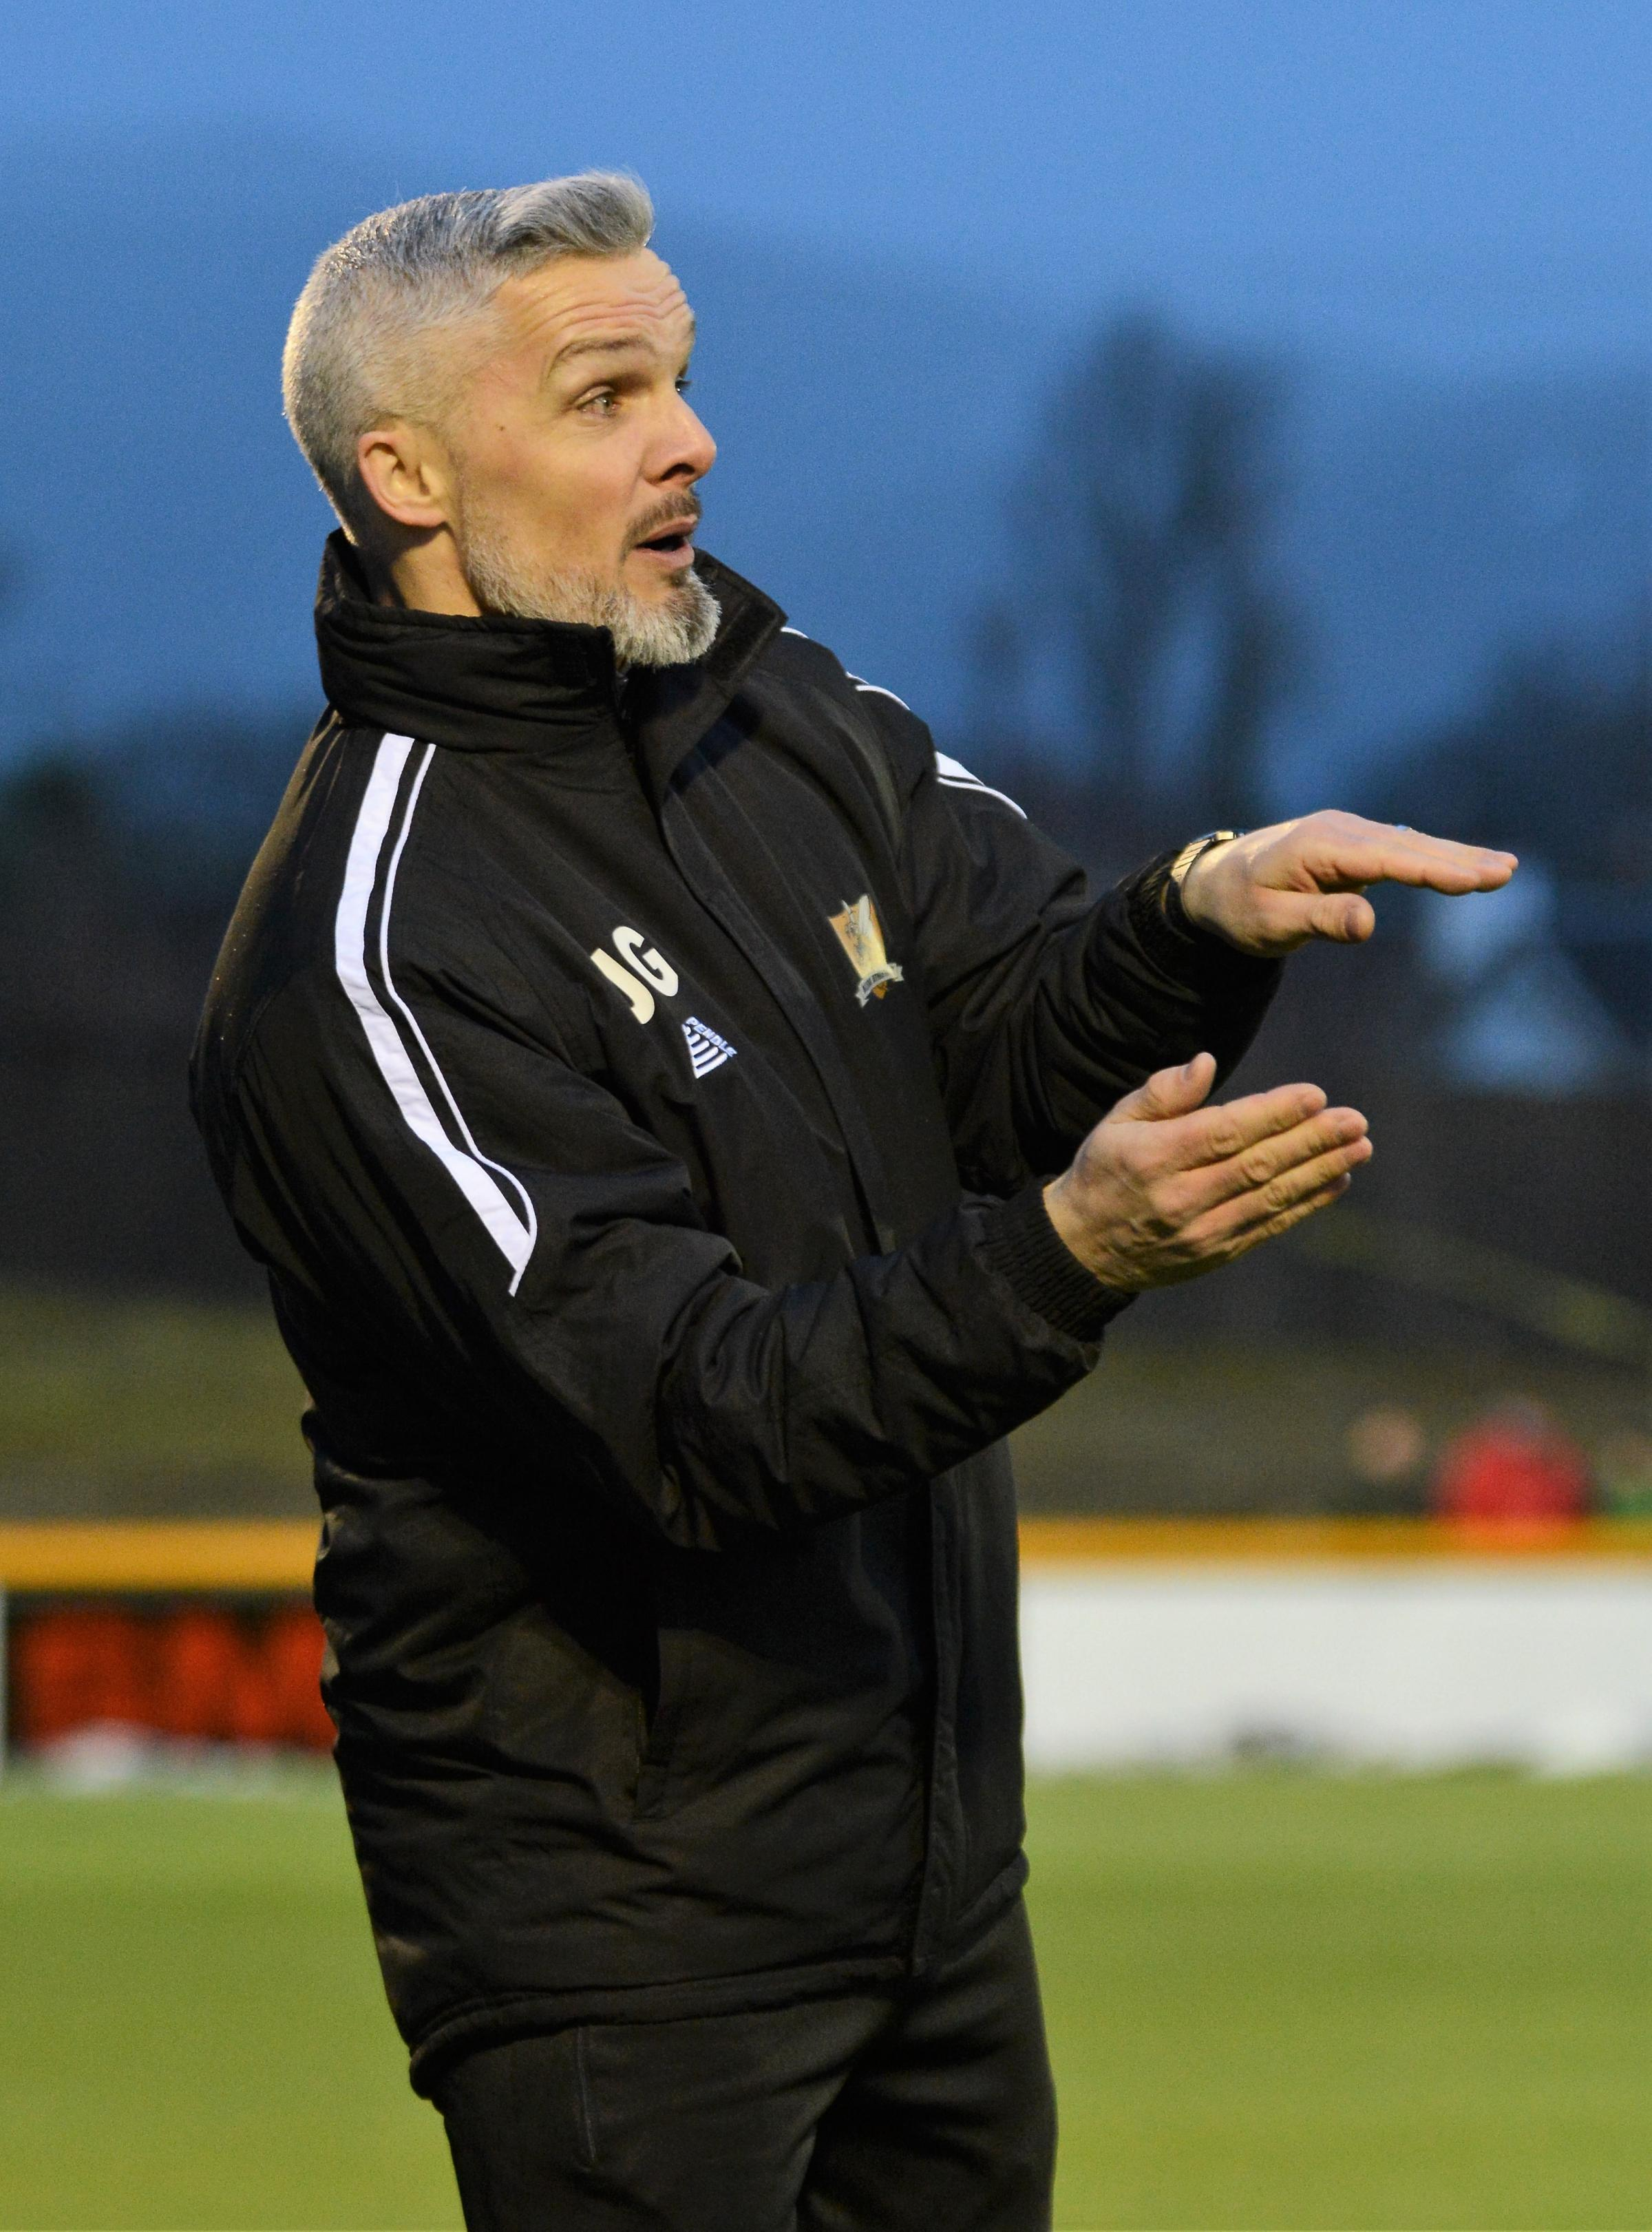 STRONG DEFENCE: Jim Goodwin is hoping to see his side build on their strong defensive showing